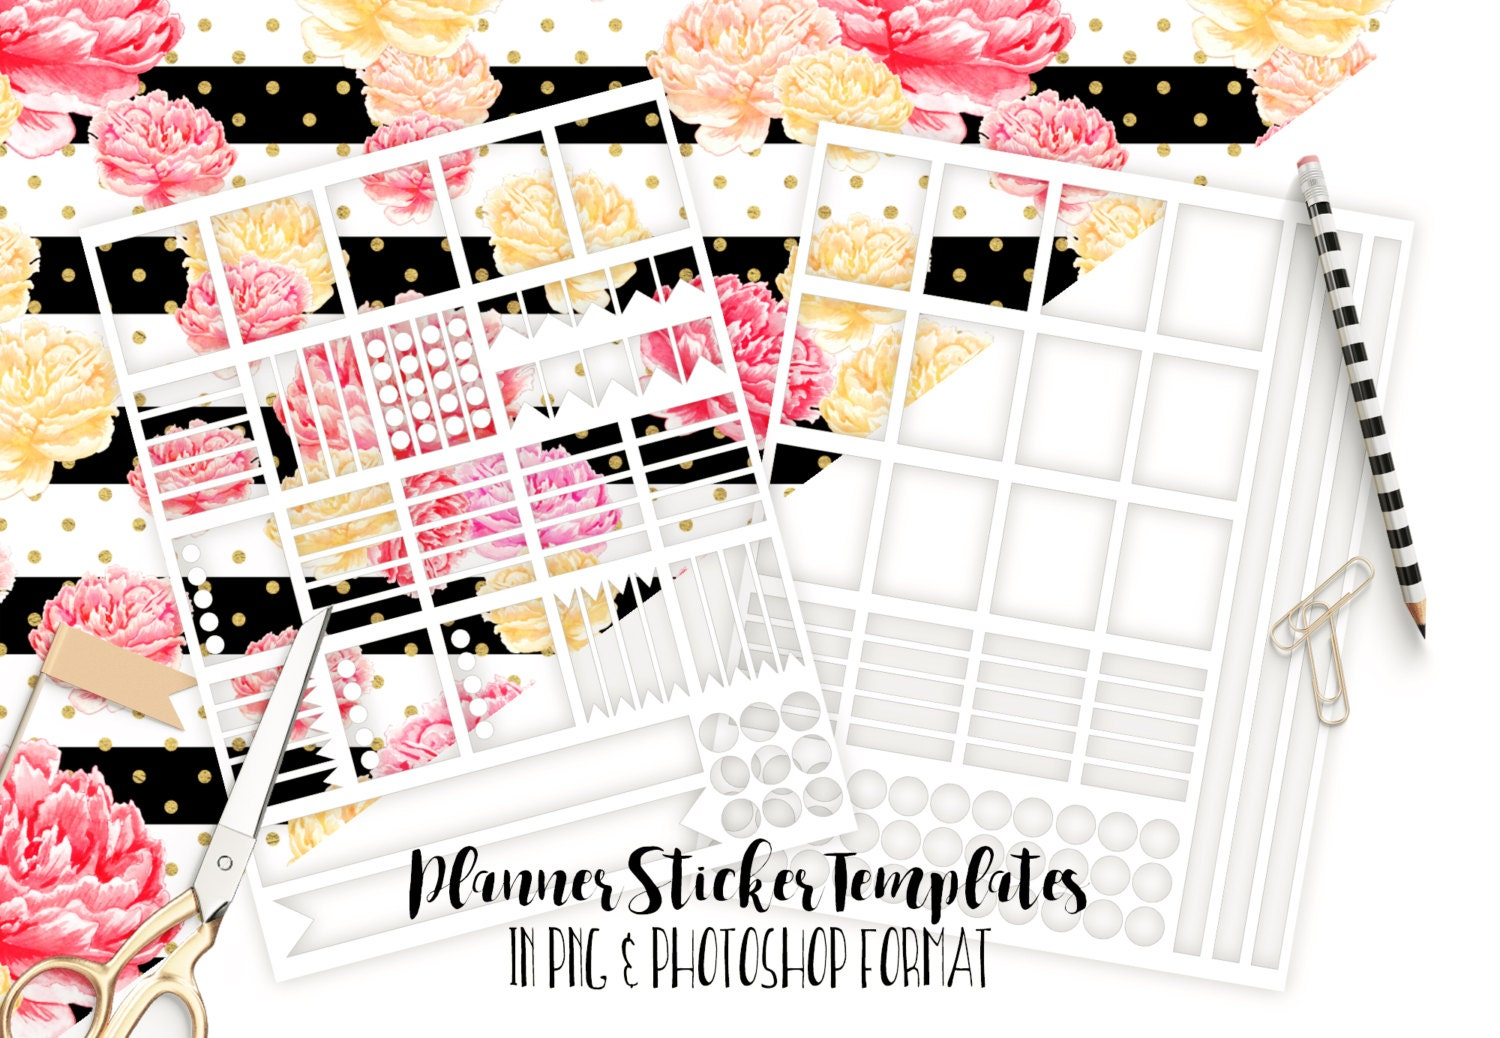 PLANNER STICKER TEMPLATES Commercial Use Blank Diy Sticker for Planner Stickers Template  157uhy